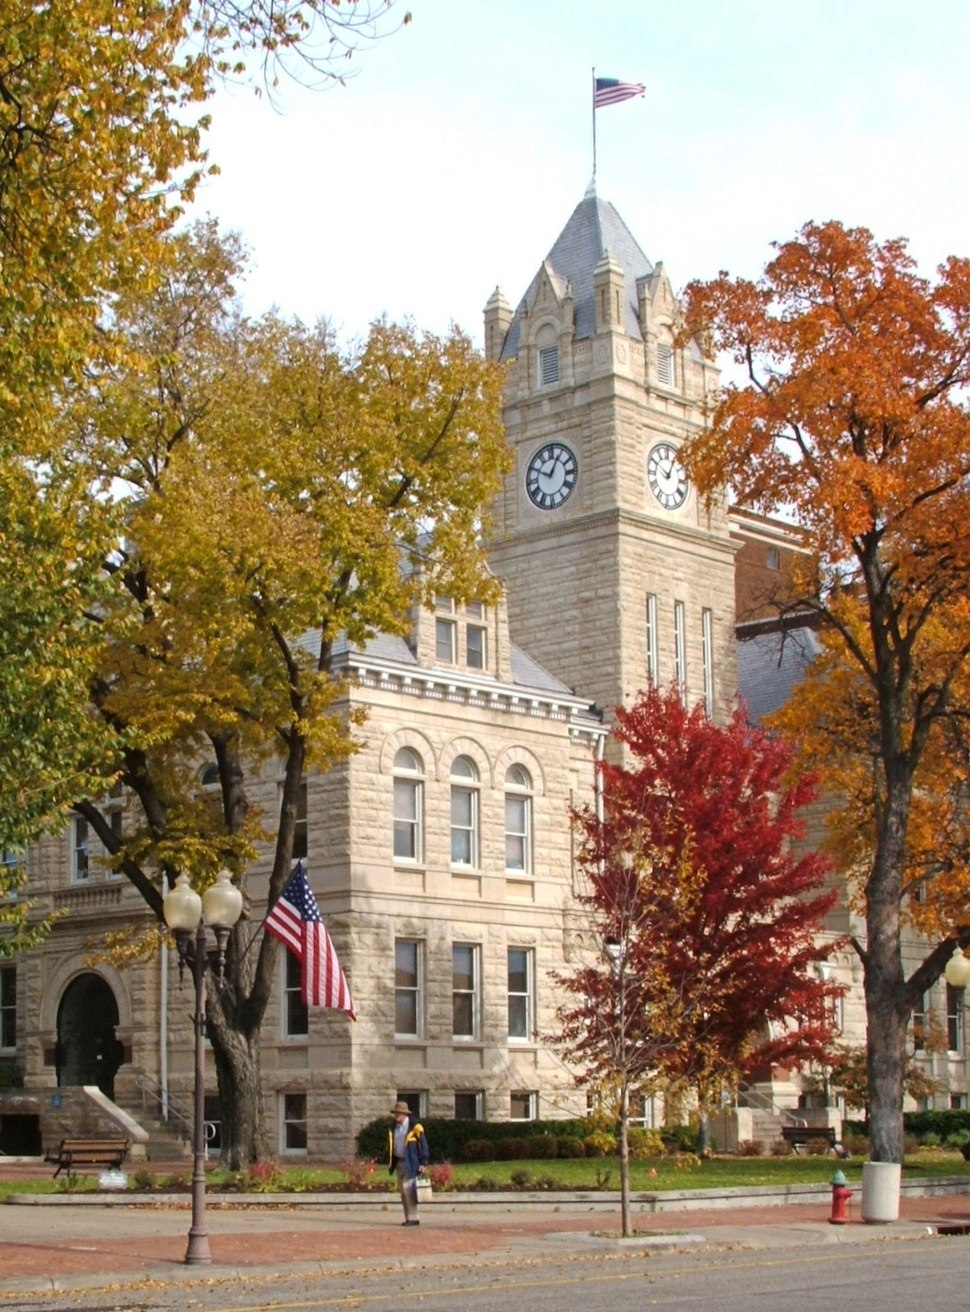 Riley (Kansas) County Courthouse 1